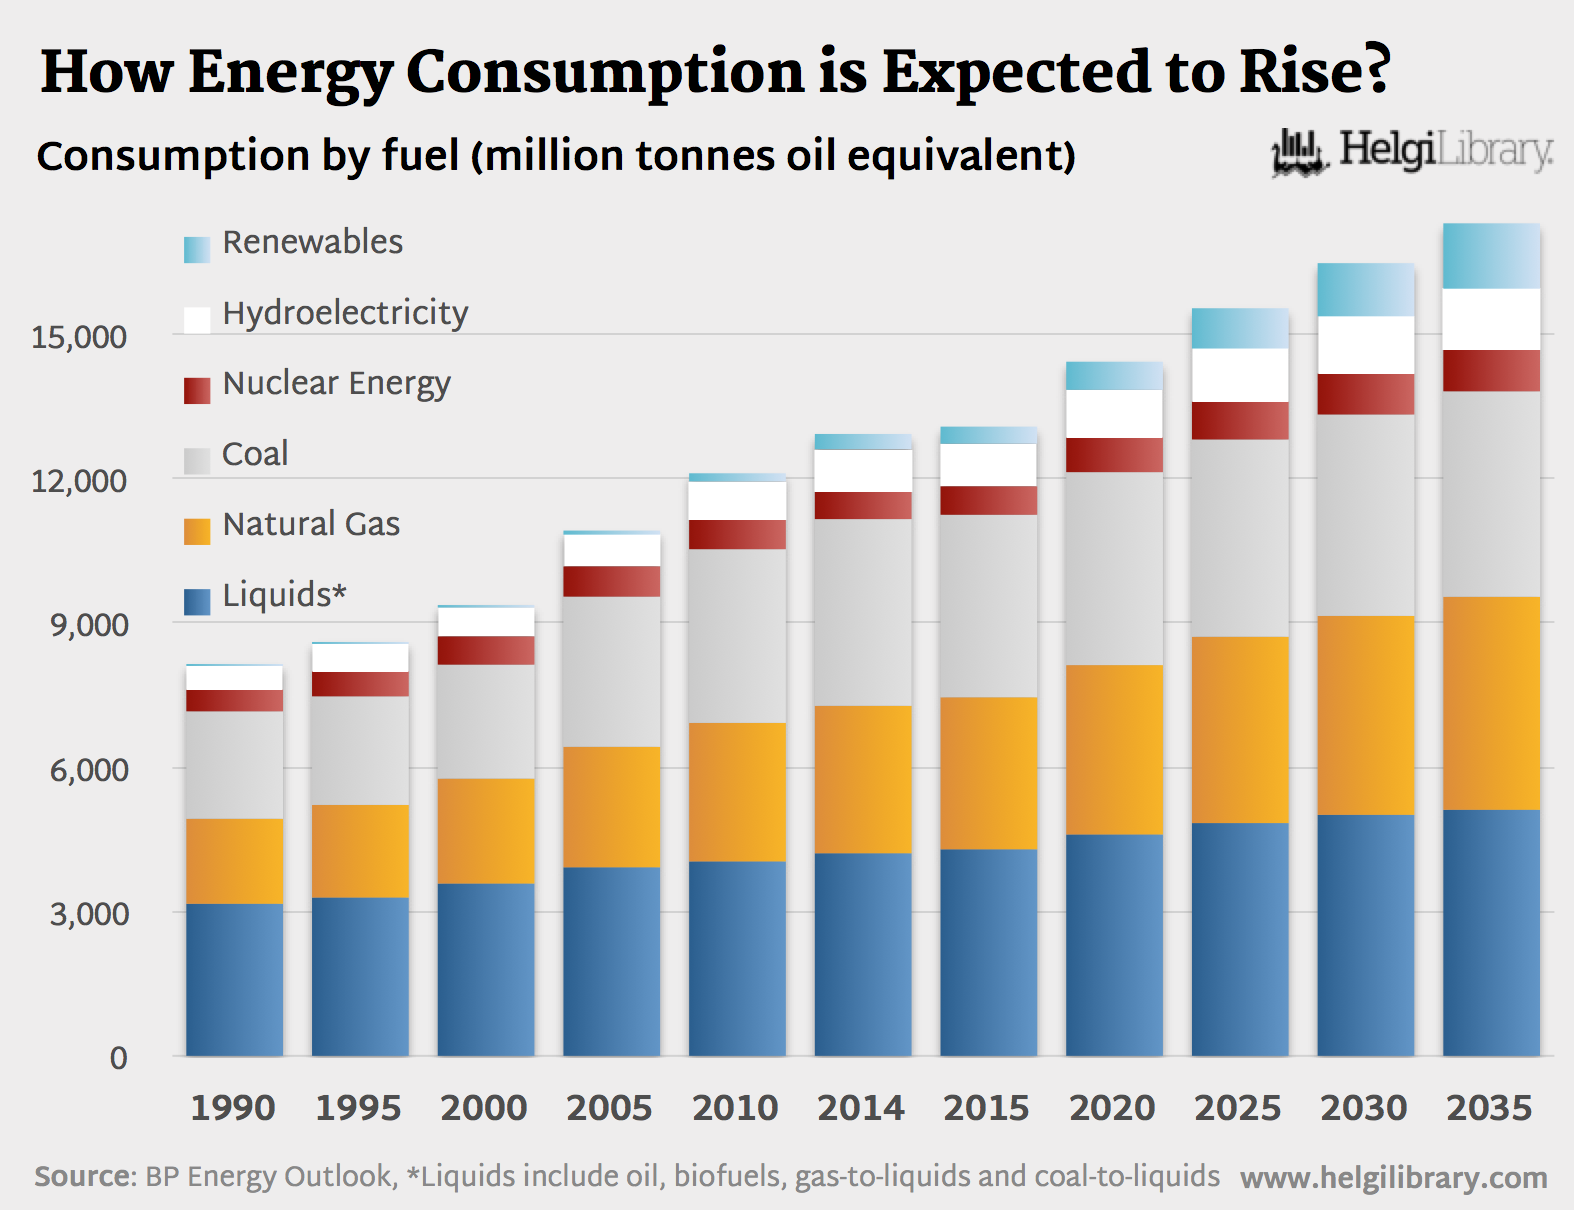 How Energy Consumption is Expected to Rise by 2035?